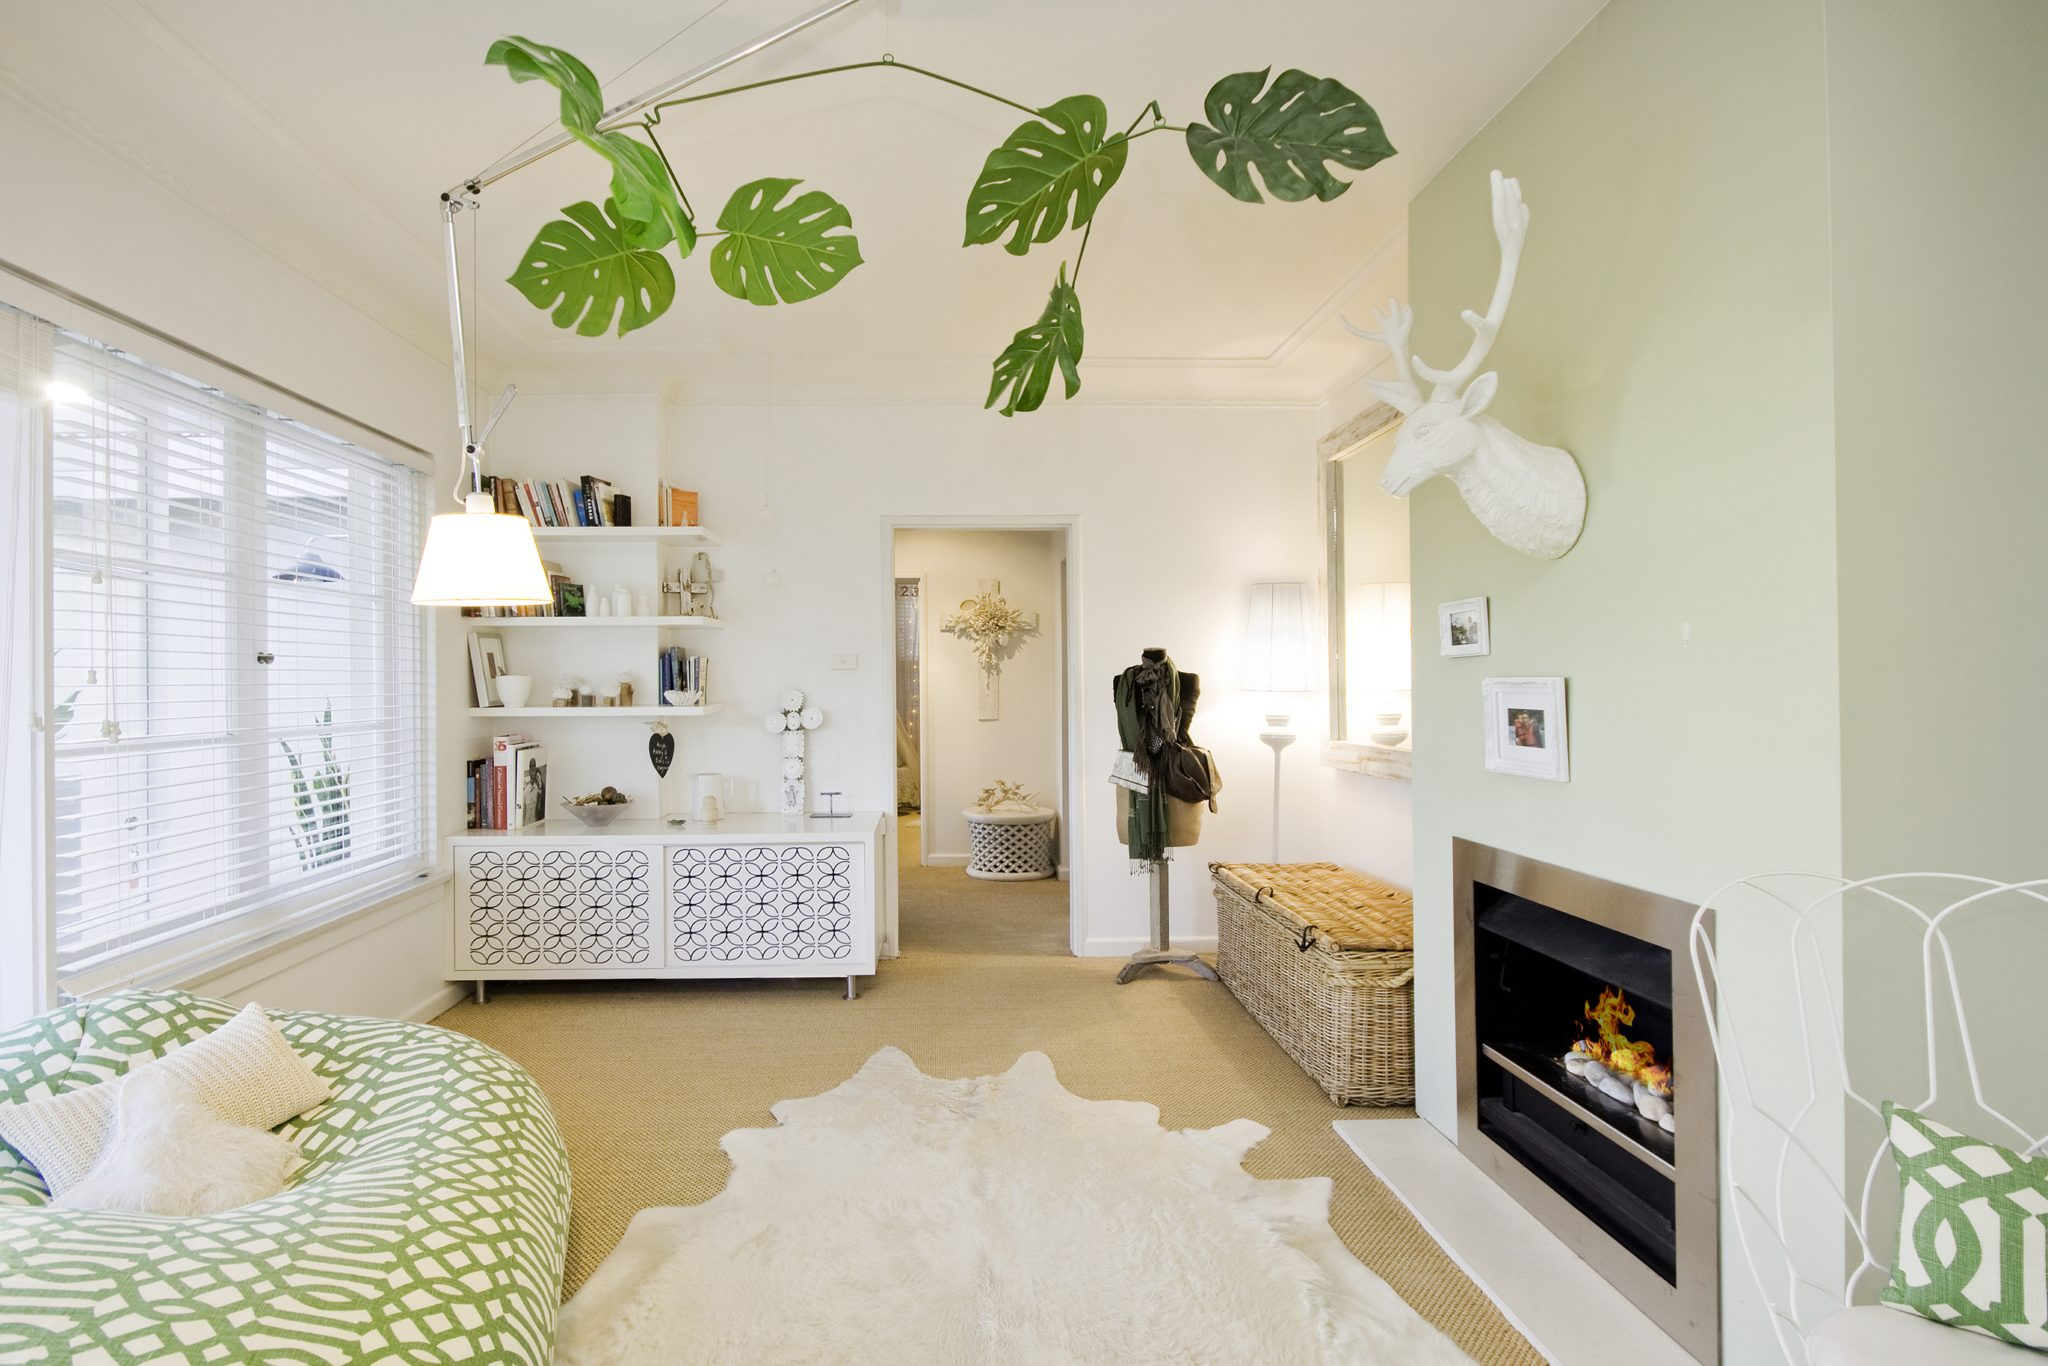 Tree Top living with a simple green and white palette. by Bronwyn Poole by Touch Interiors